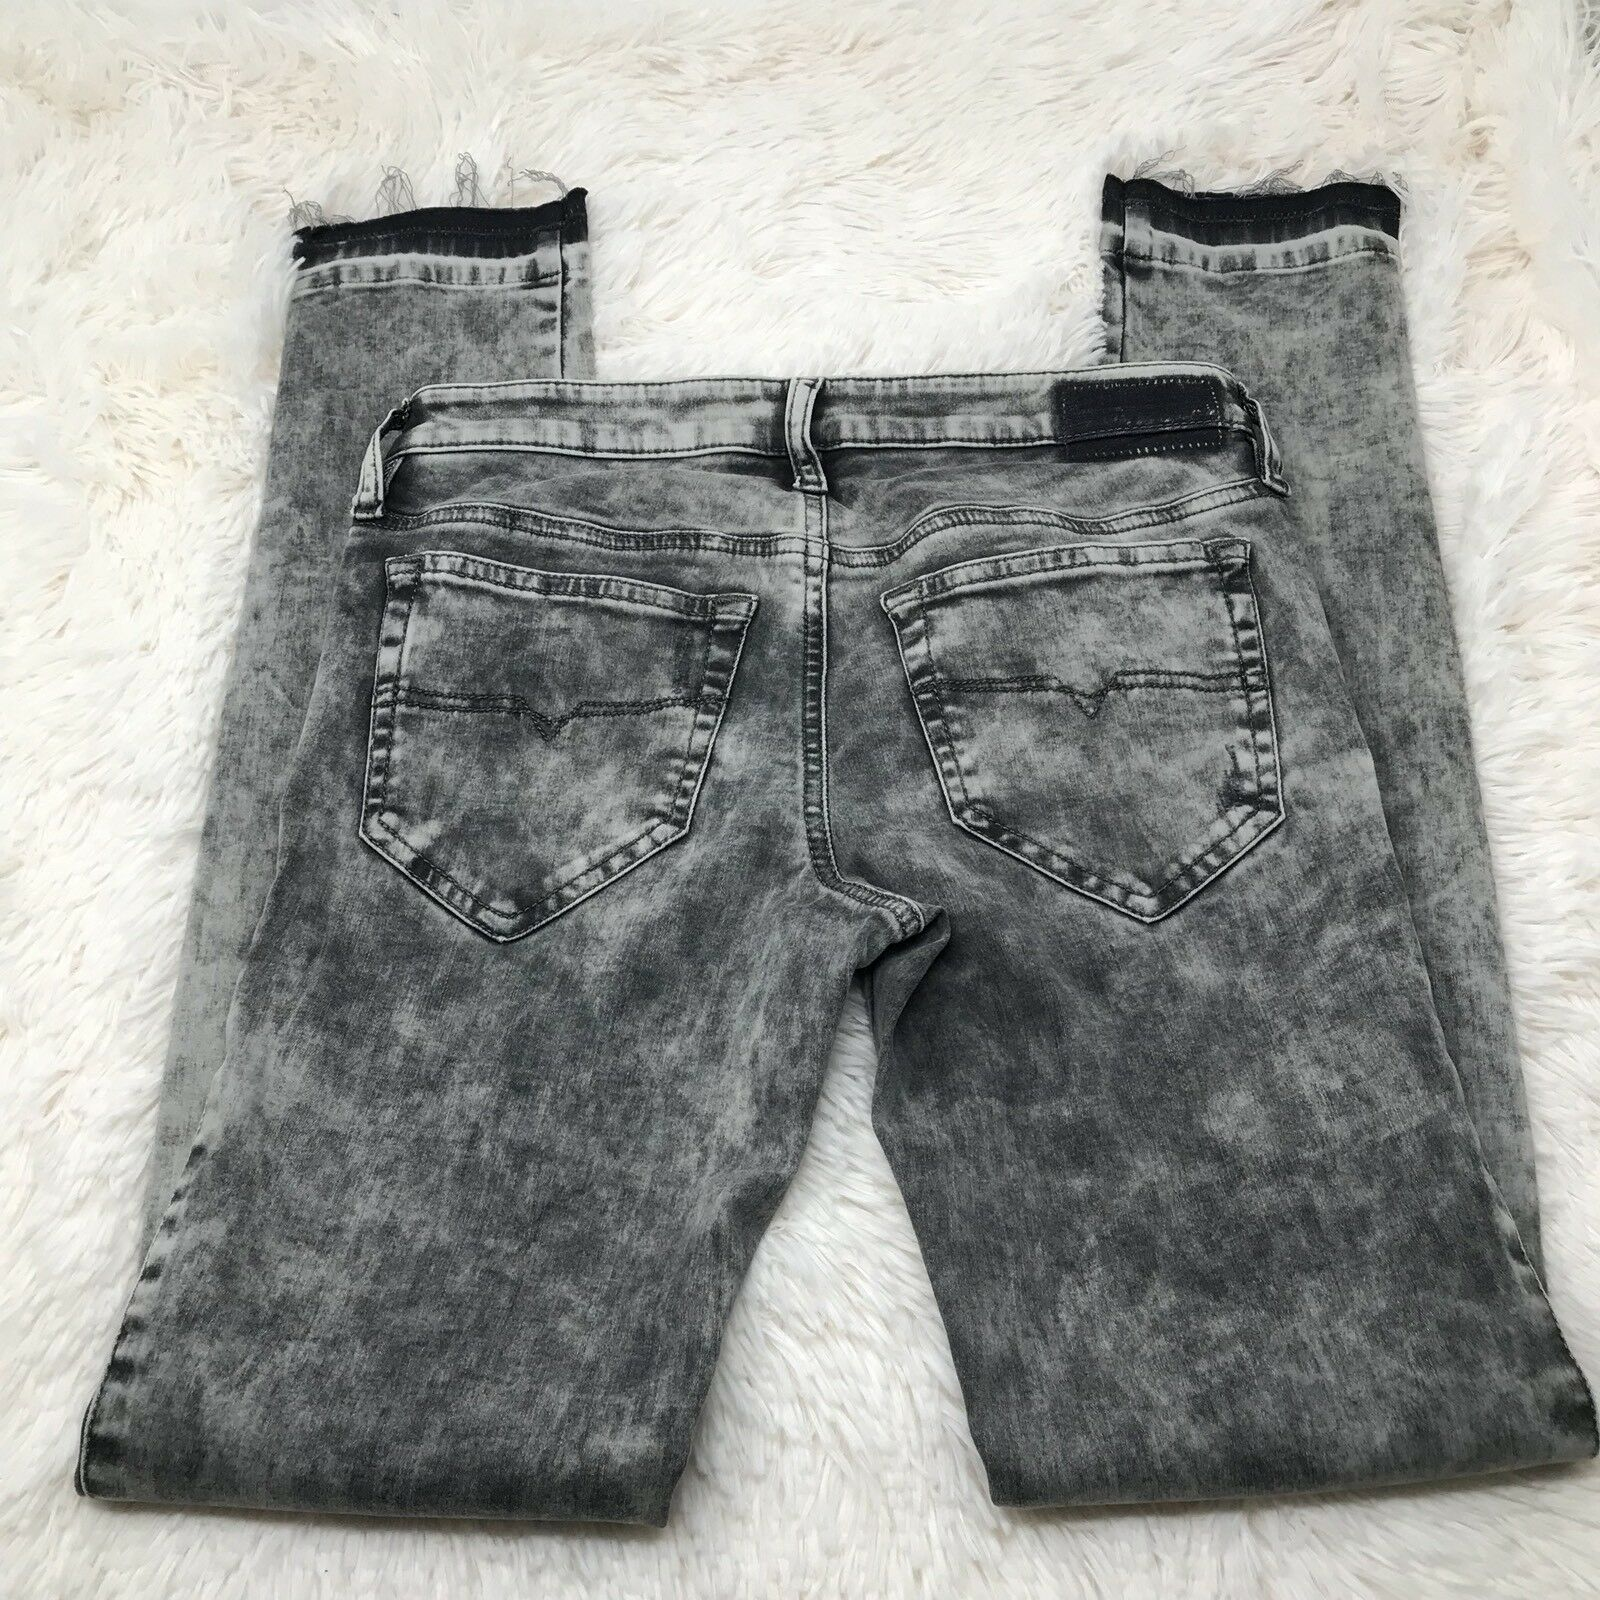 Diesel Skinzee Grey Jeans Size 26x30 Super Slim Skinny Regular Waist Raw Hem New